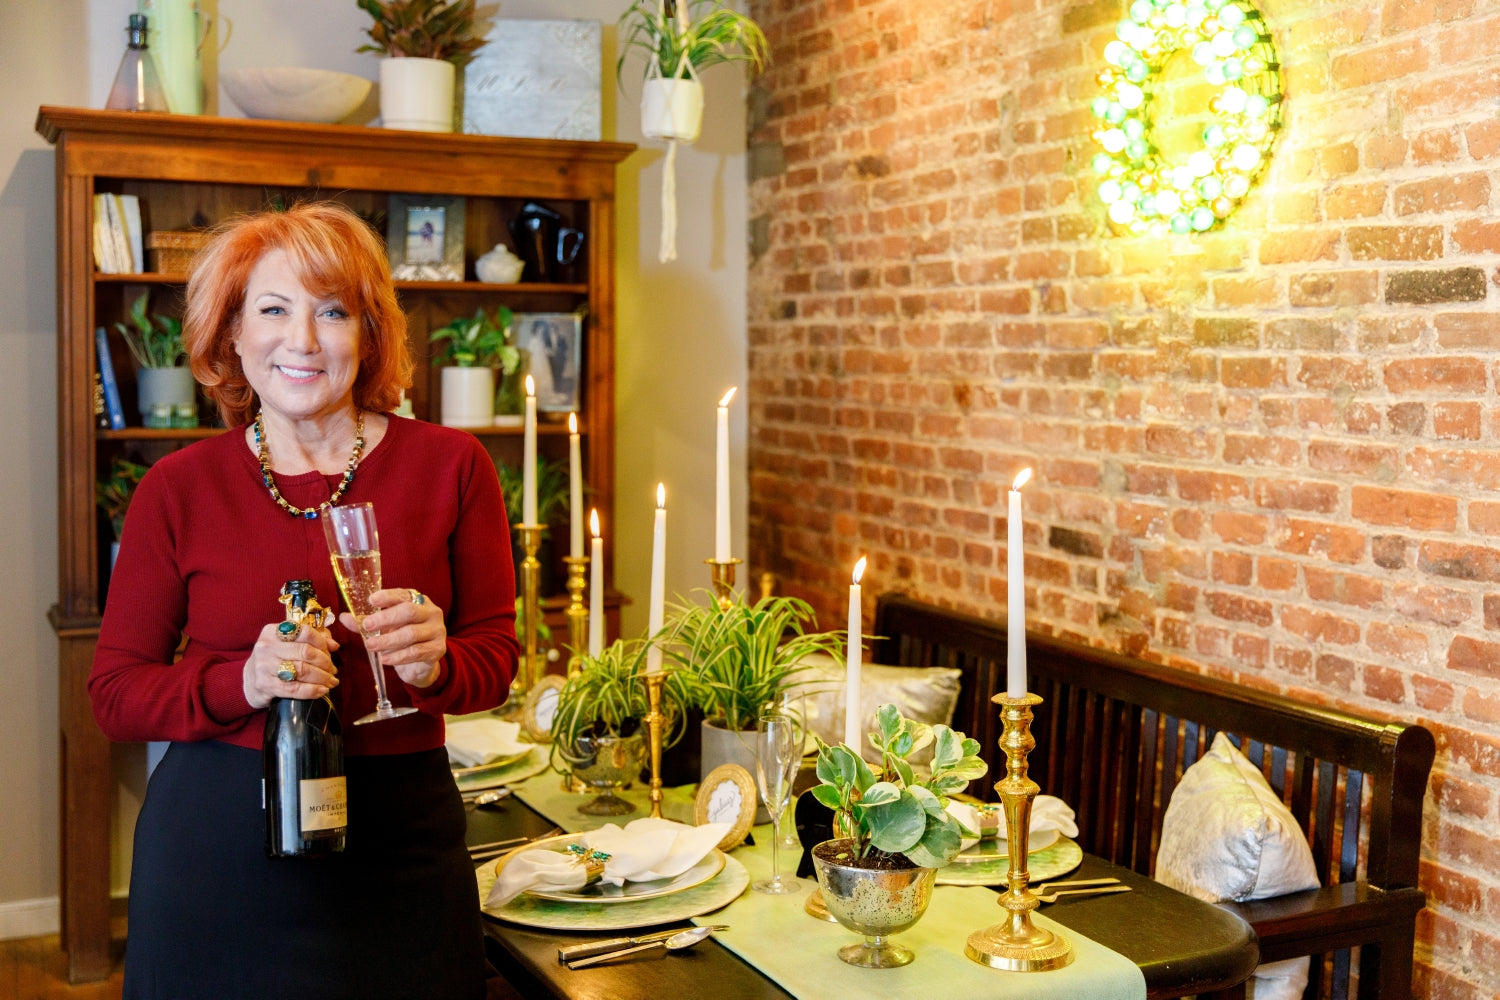 Marcy Blum; designer and event planner, unapologetic lover of parties and plants